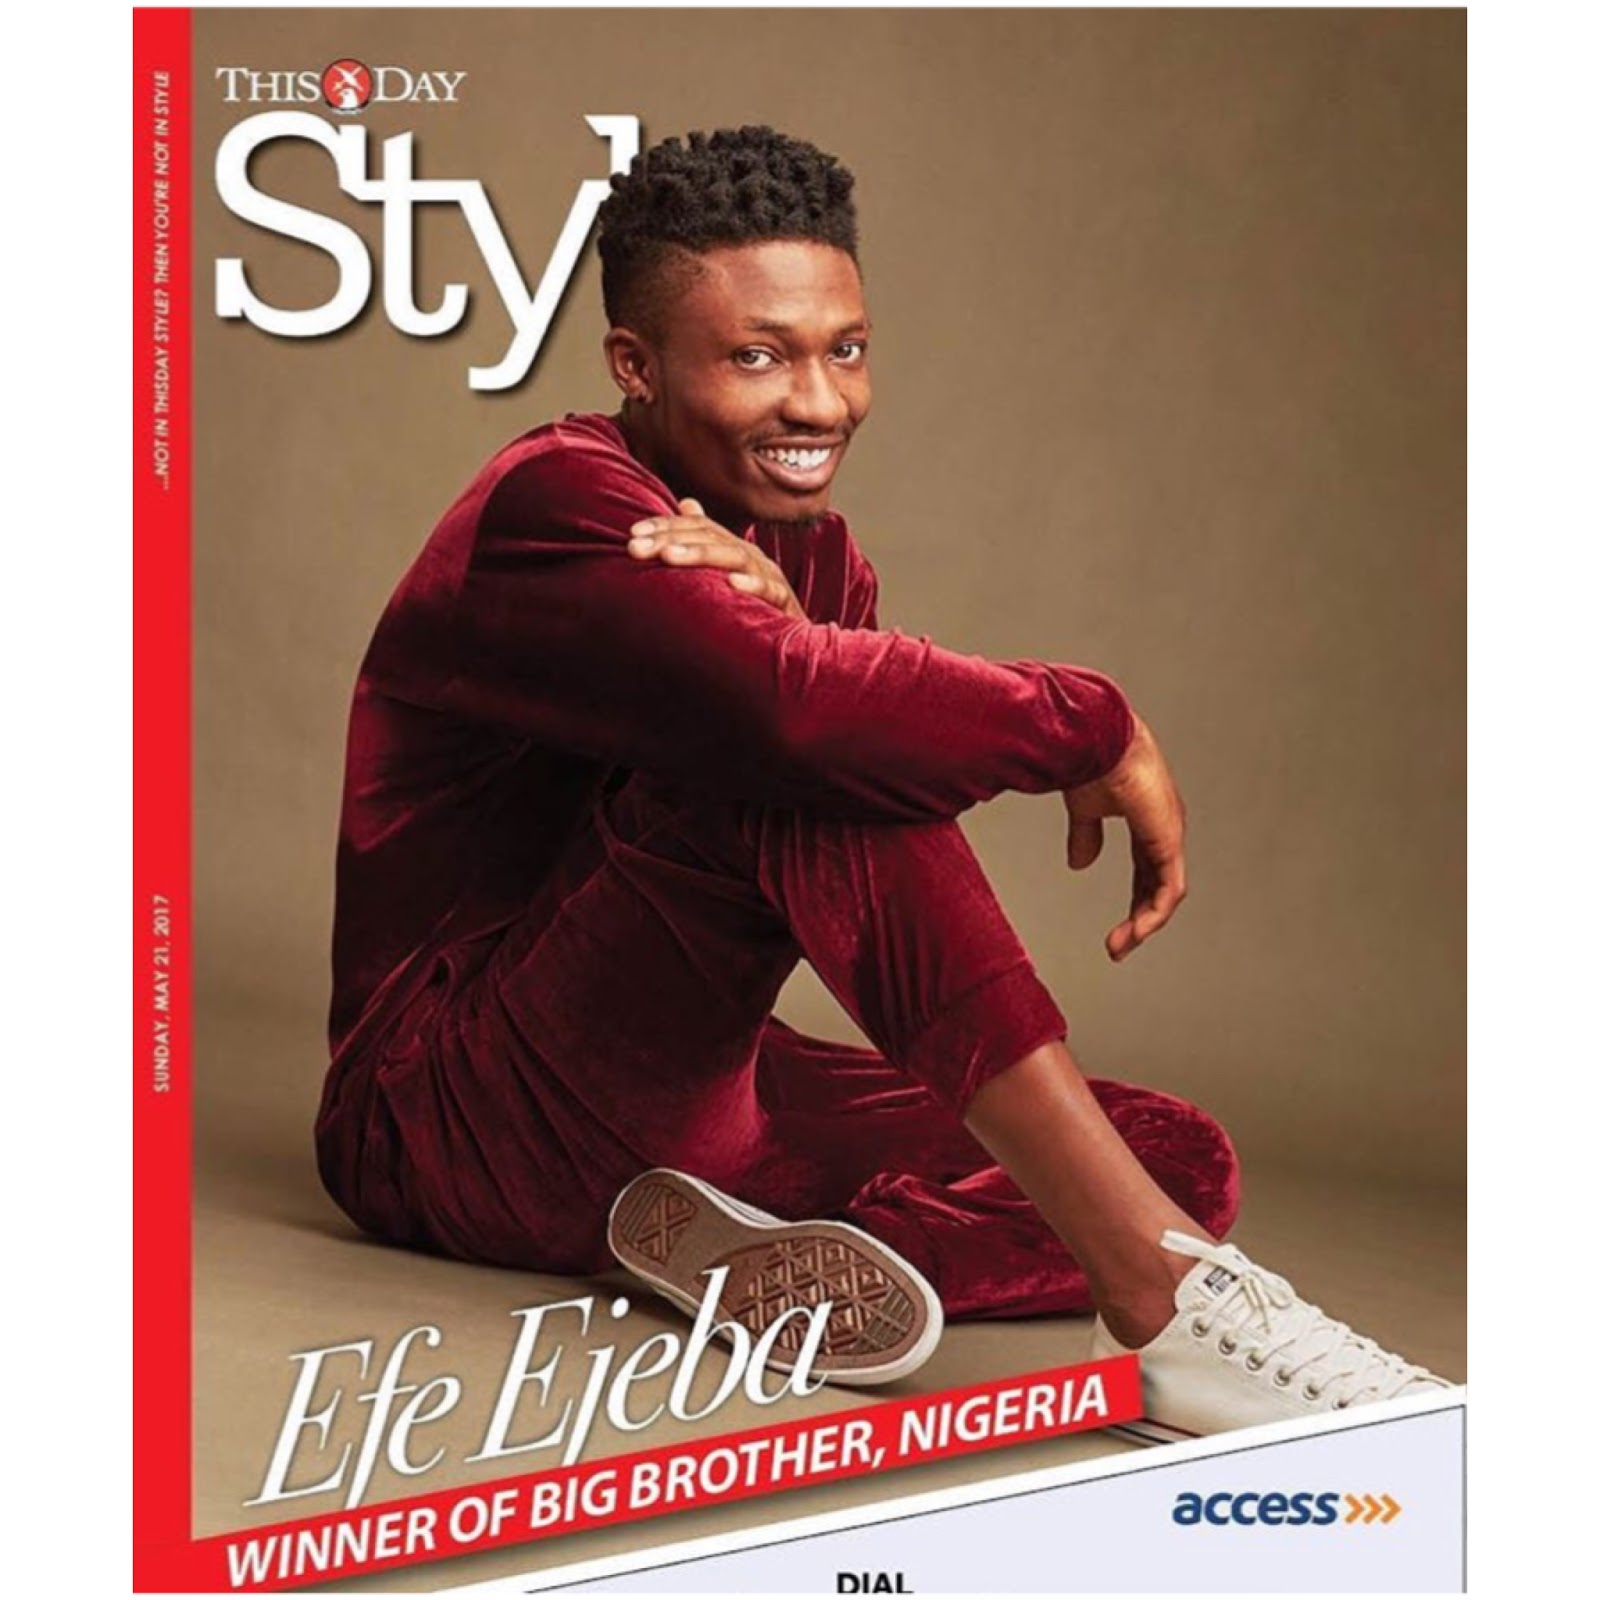 #BBNaija's Efe Covers ThisDay Style Magazine's Latest Issue